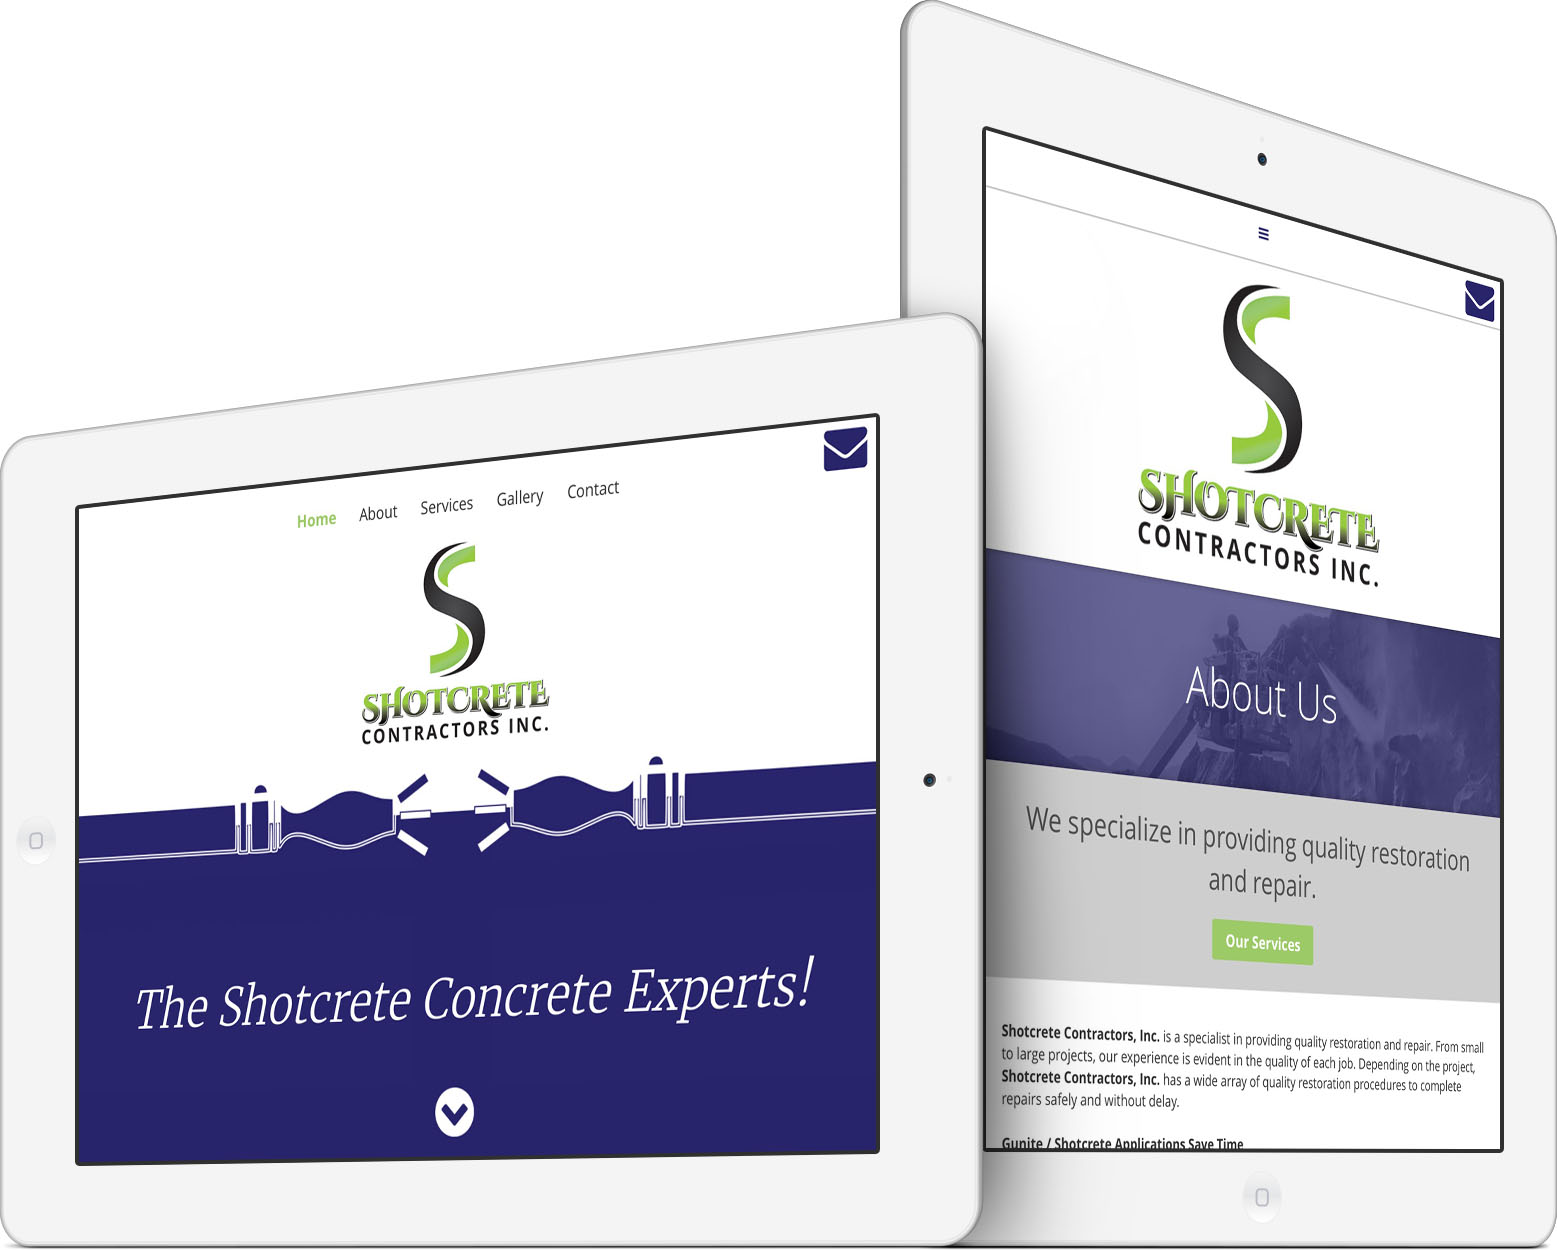 Shotcrete Contractors, Inc. Responsive Web Design